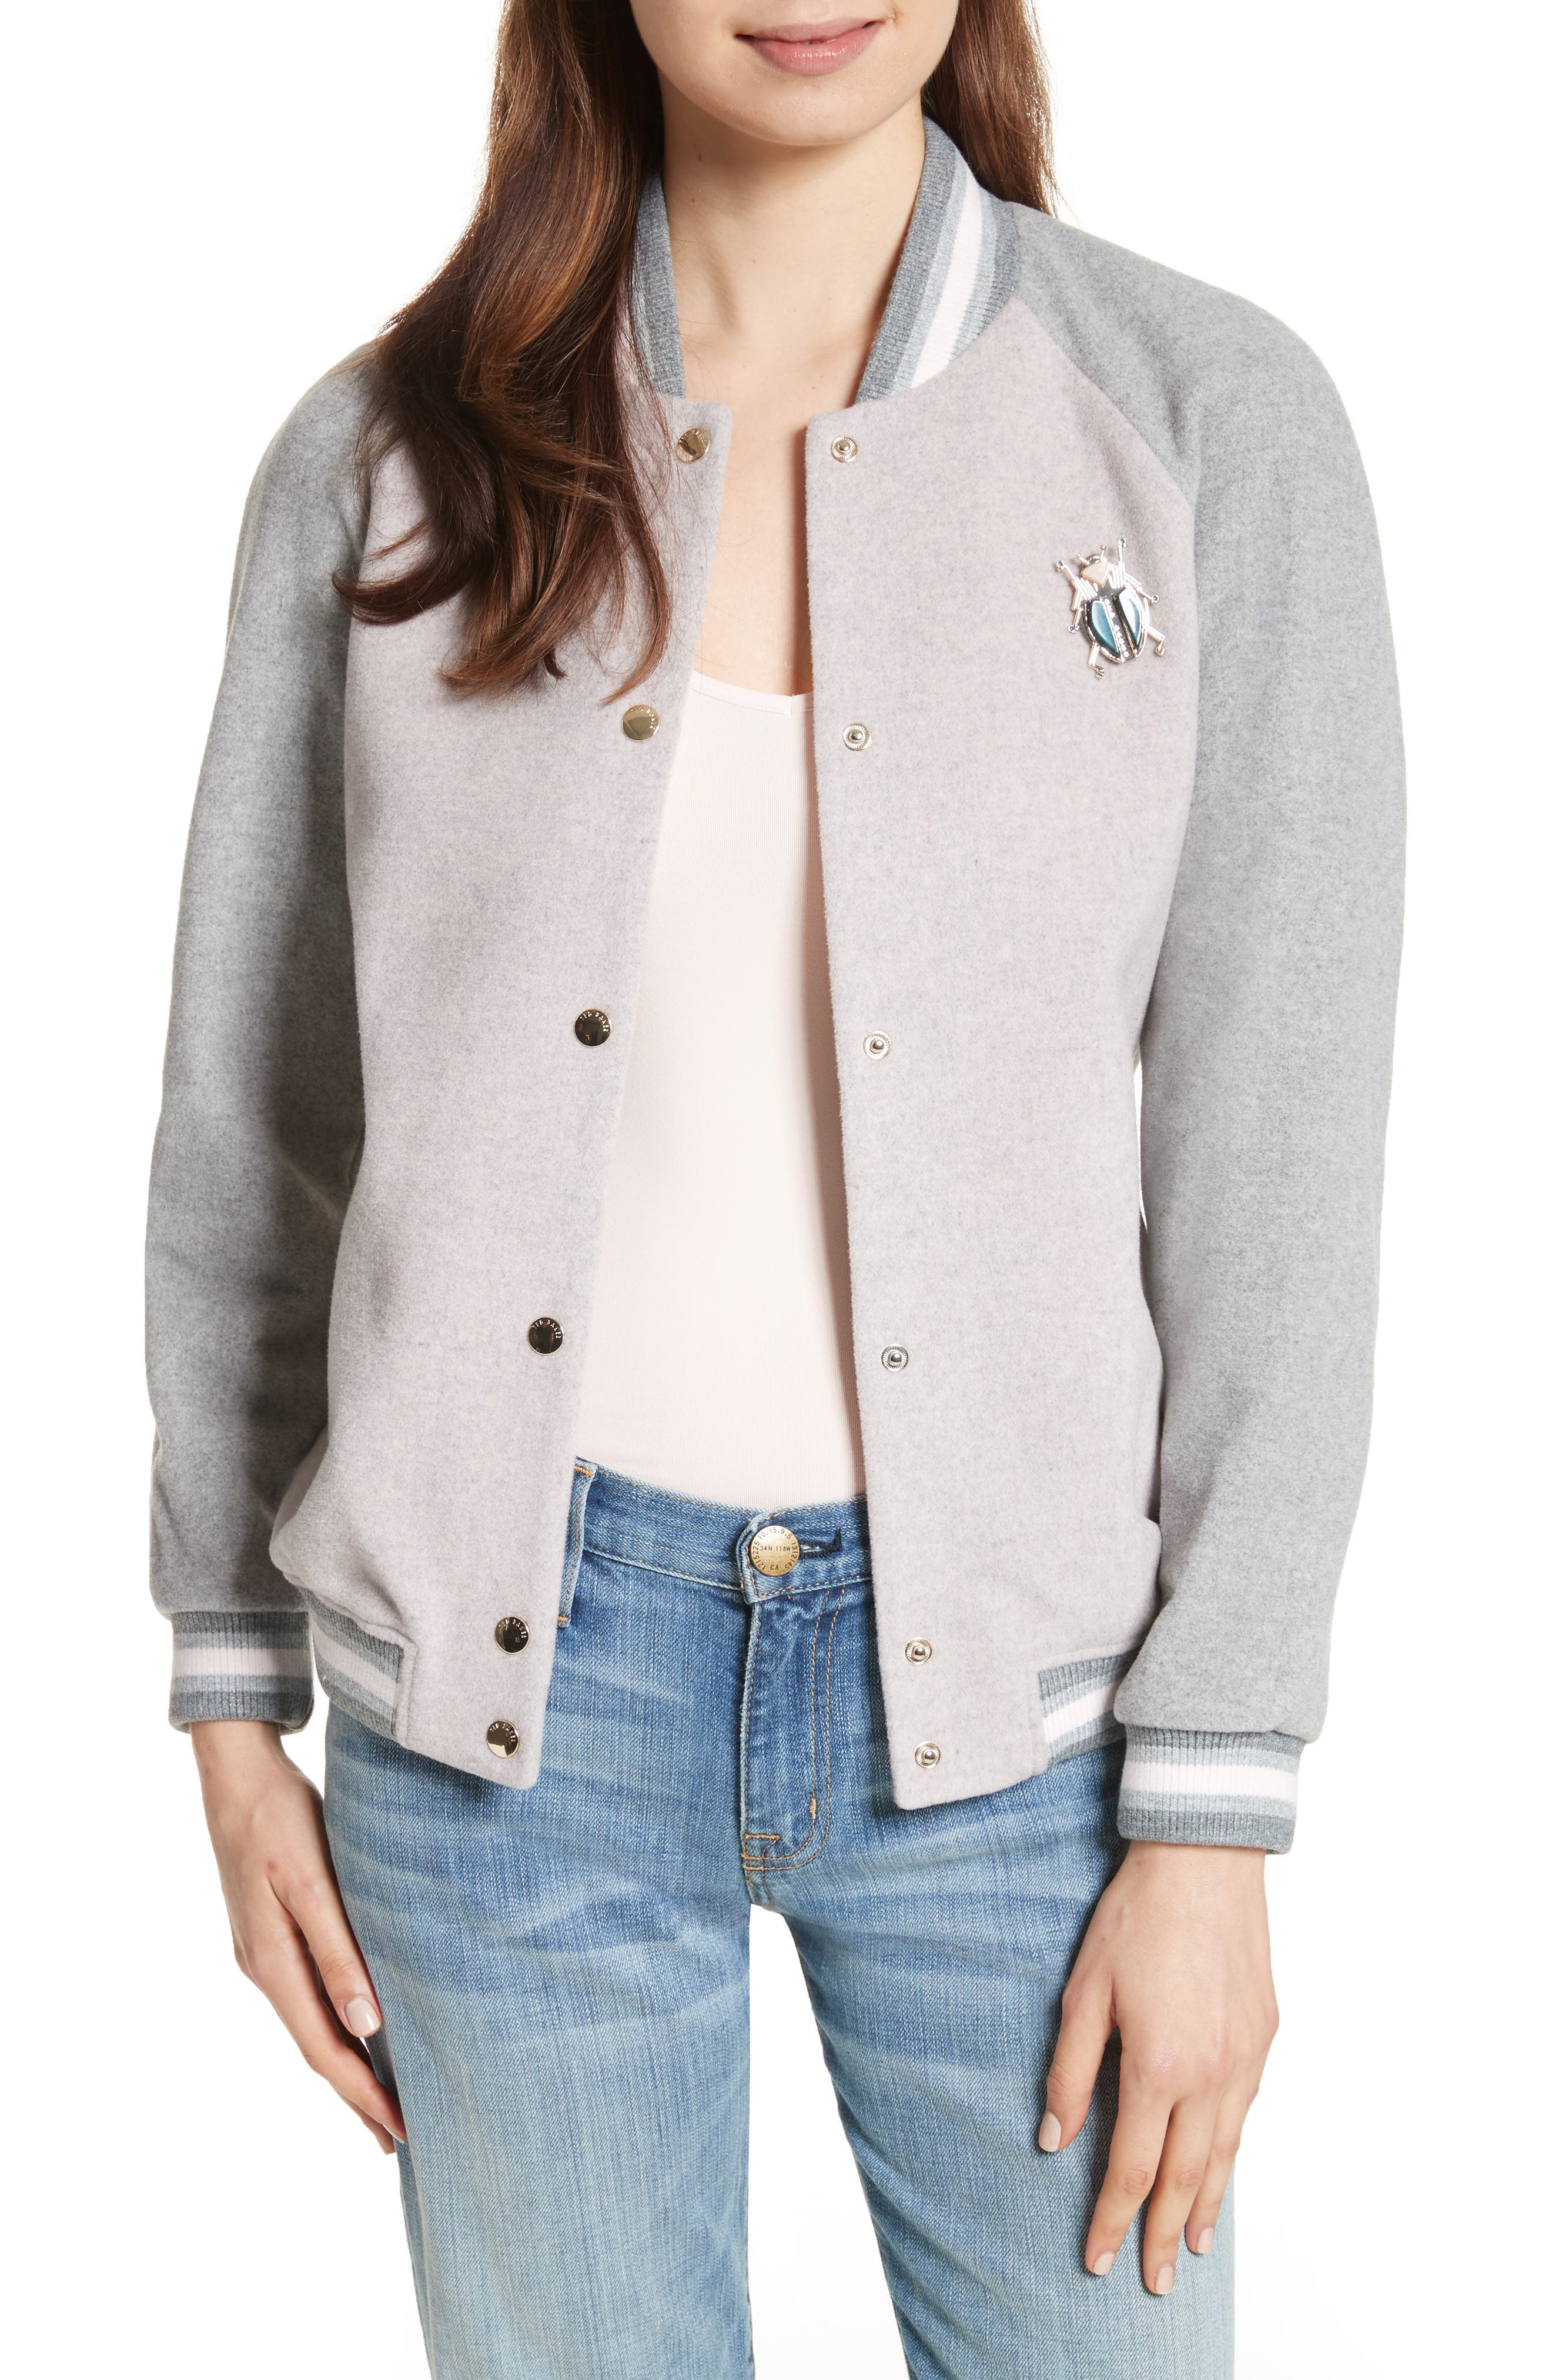 Augusta Embellished Bomber Jacket,                             Main thumbnail 1, color,                             652